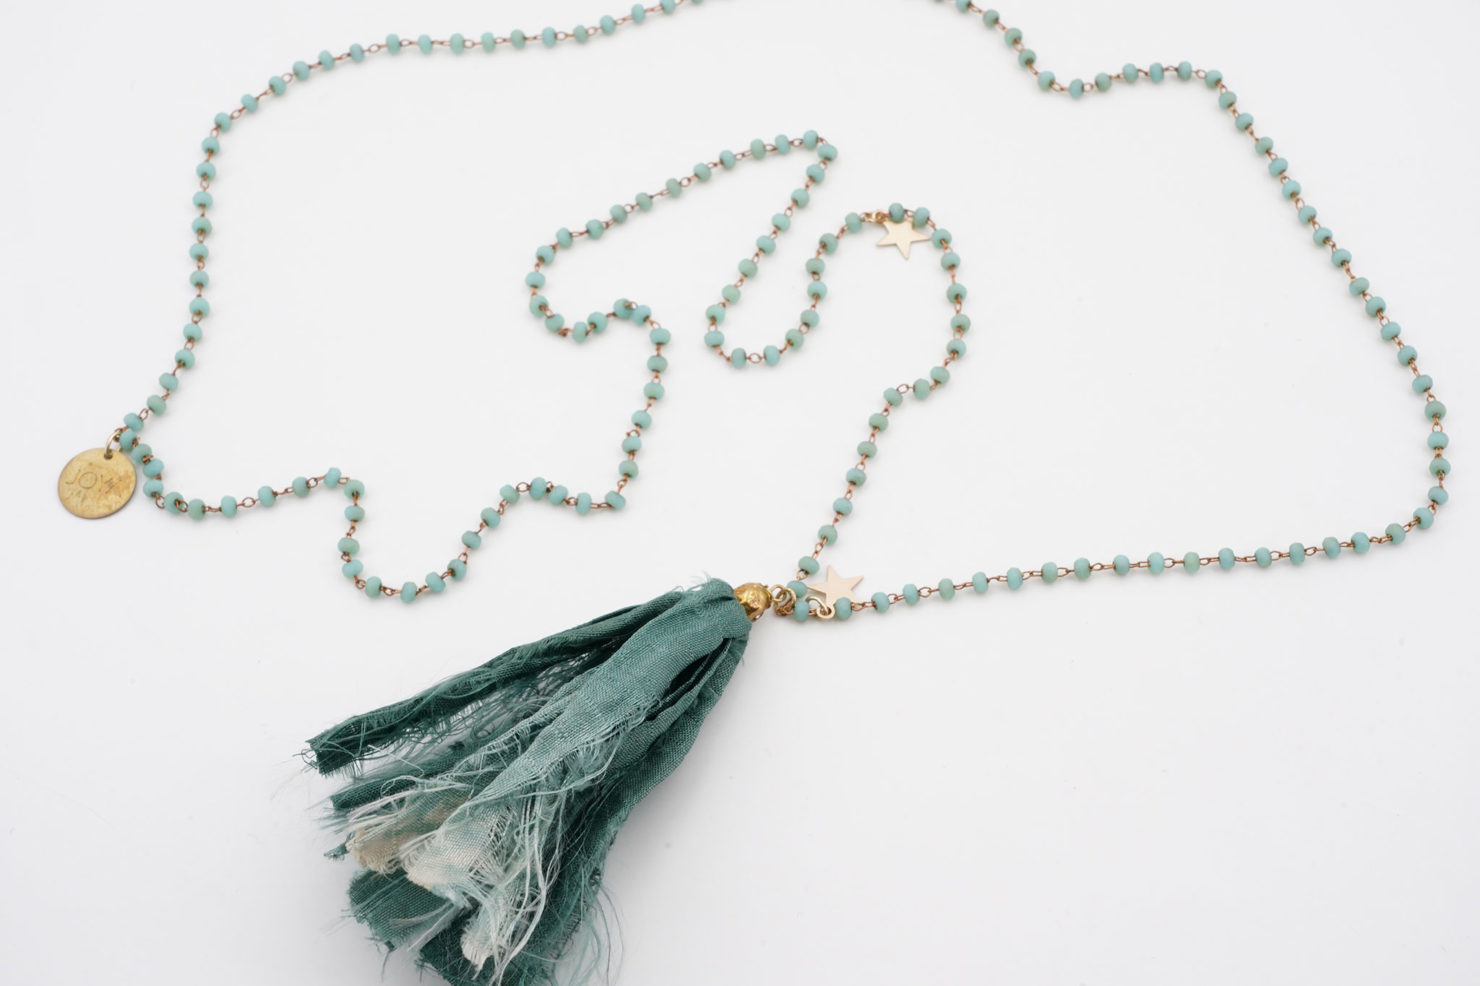 NECKLACE WITH SILK TASSEL - JOYA